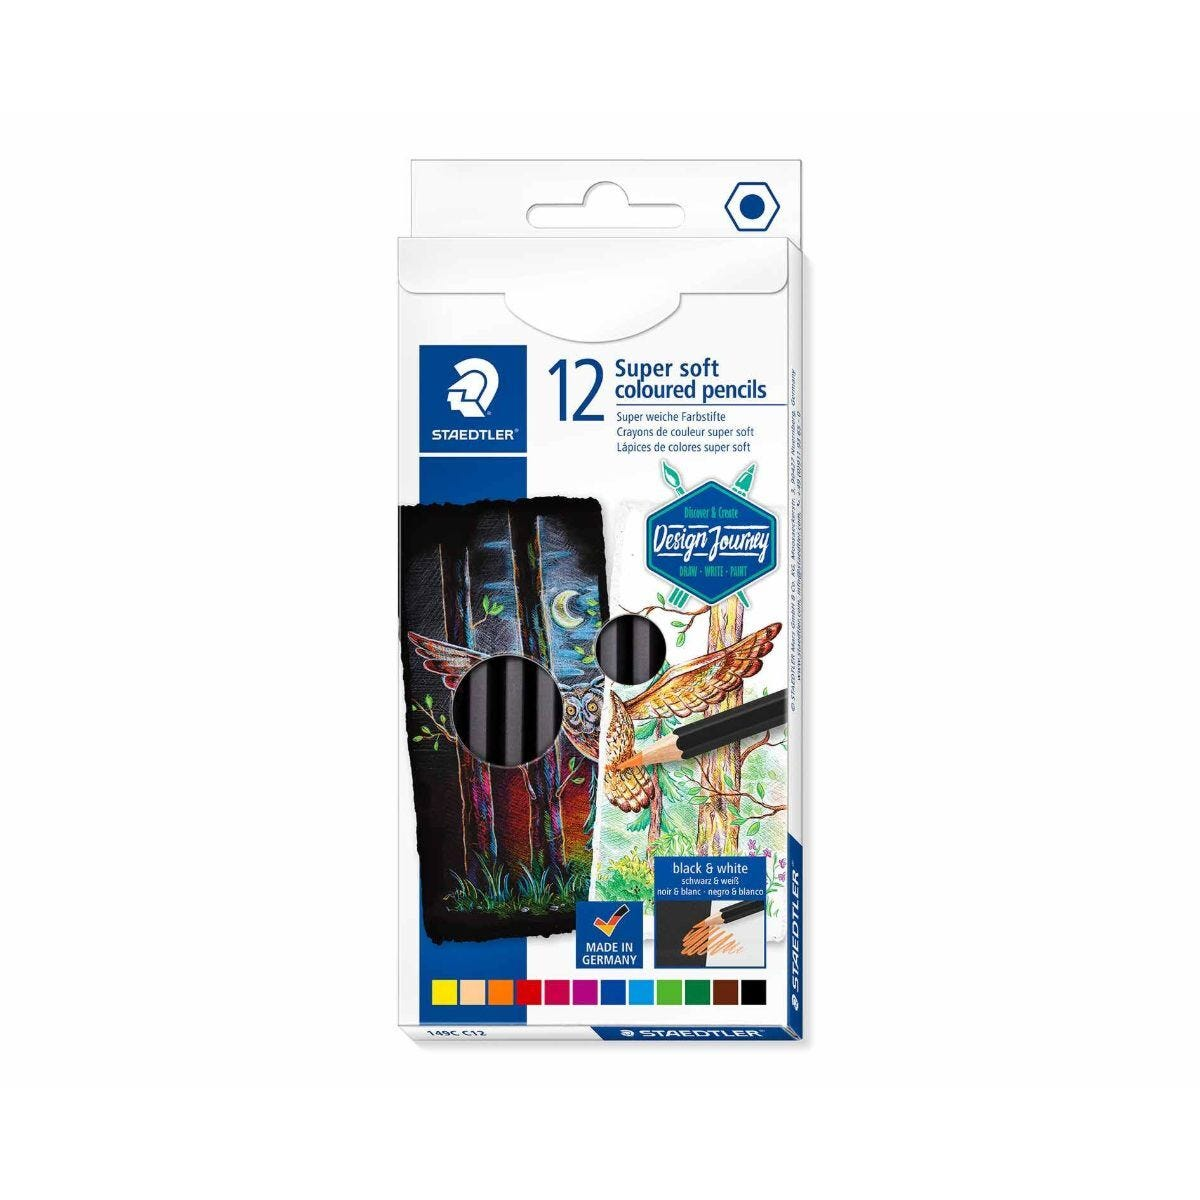 Staedtler Design Journey Super Soft Colouring Pencils Pack of 12